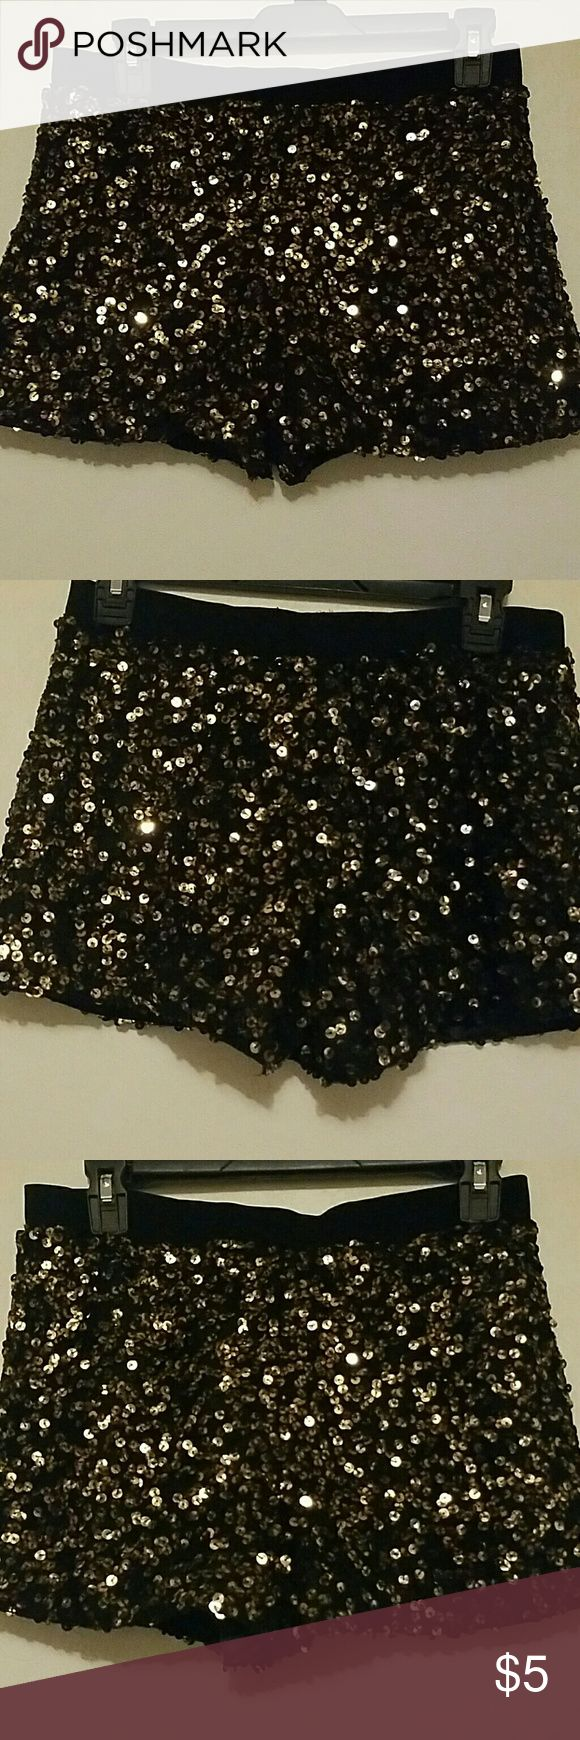 Gold and black sequin shorts Gold and black sequin shorts Shorts